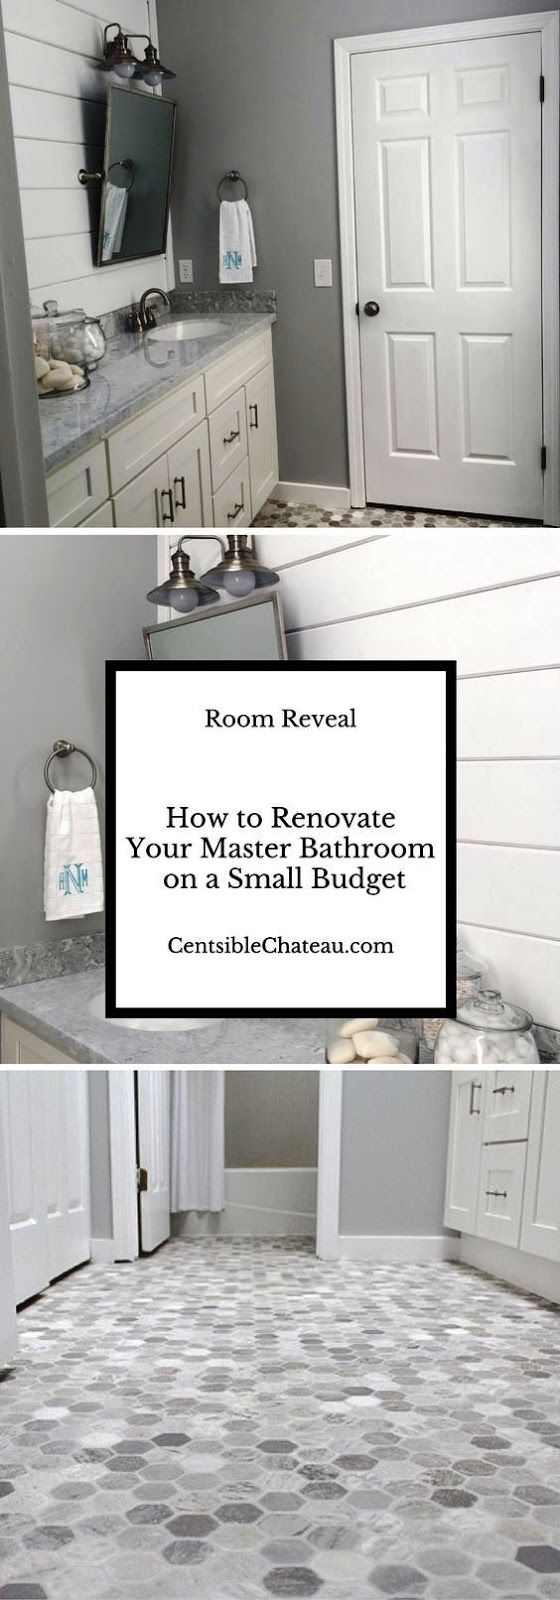 Bathroom Remodeling Ideas On A Budget - Decor Units